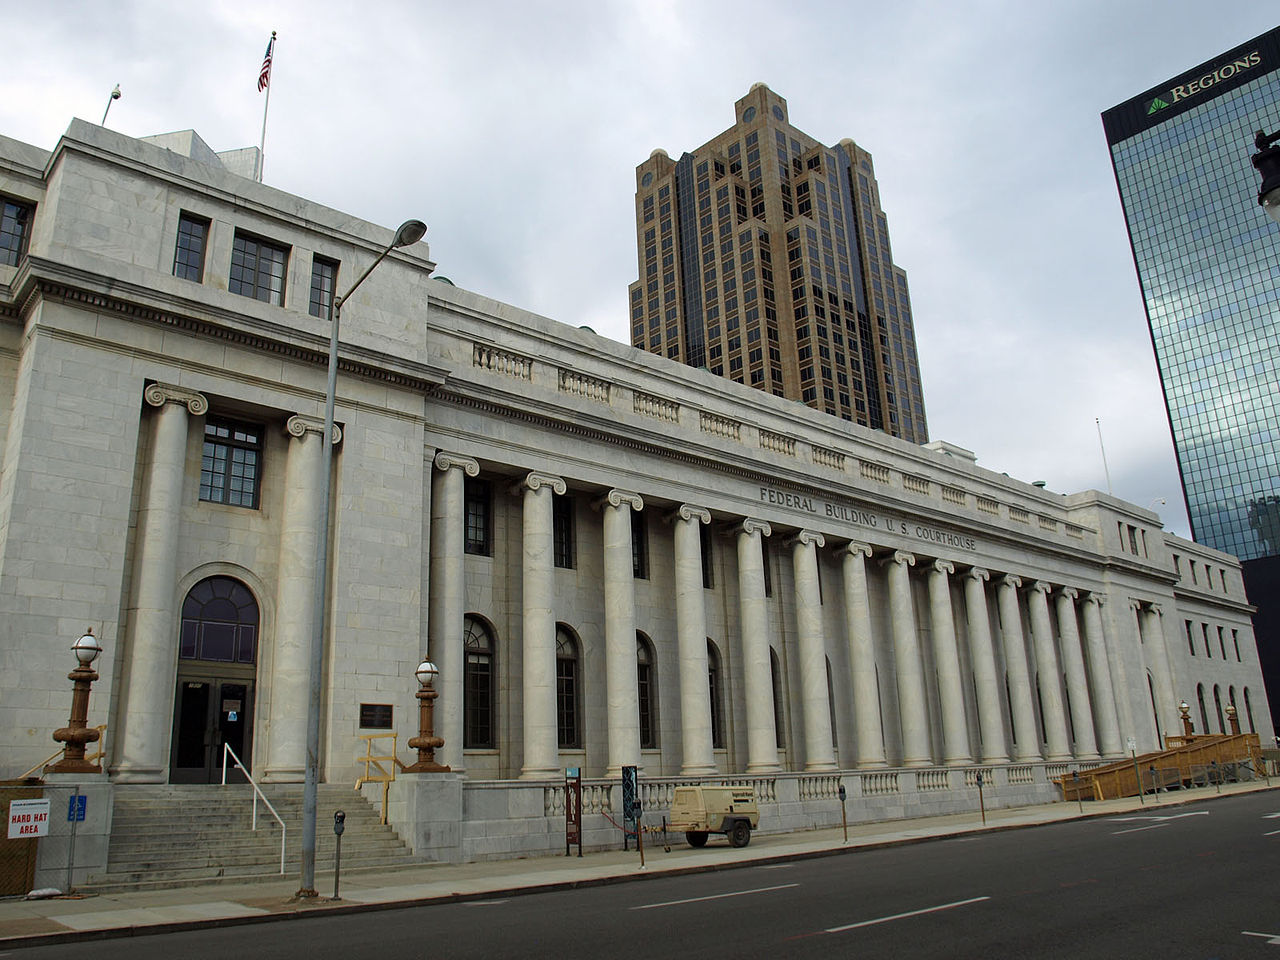 The Robert S. Vance Federal Building and United States Courthouse was built in 1921 and is significant for its architecture. Today it houses the U.S. Bankruptcy Court for the Southern District of Alabama.